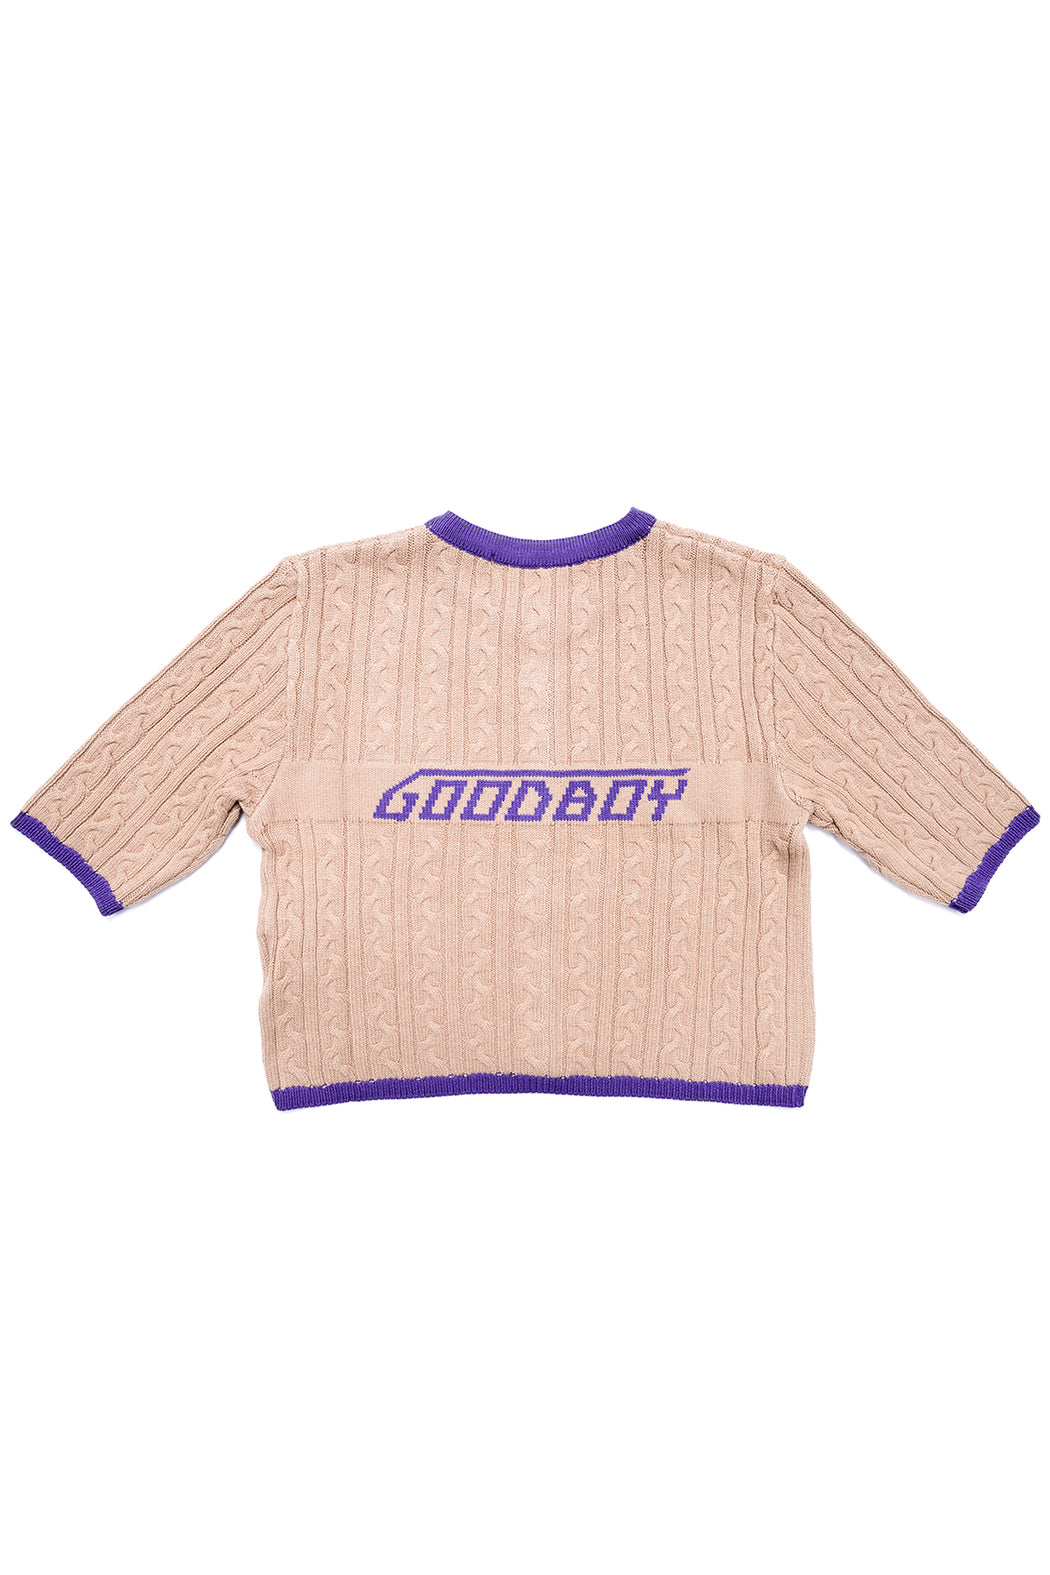 New Logo Crop Cardigan - Brown/Purple